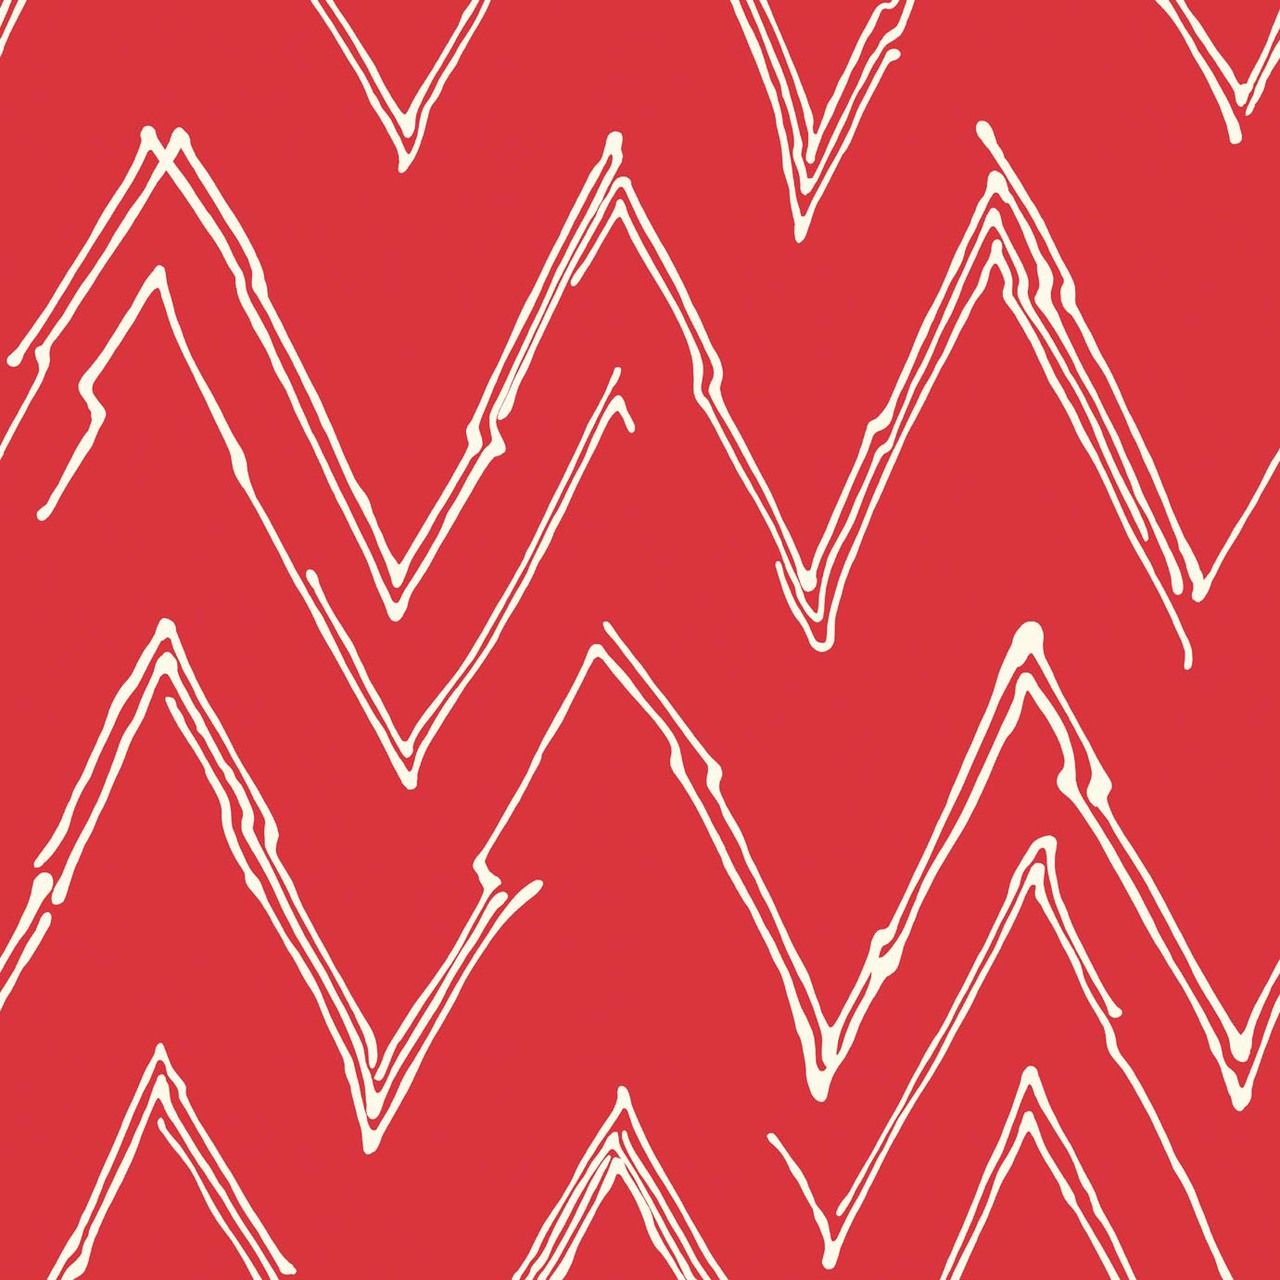 Peaks (Scarlet) - Abstract Geometric Fabric - The Textile District design to custom print for home decor, upholstery, and apparel. Pick the ground fabric you need and custom print the designs you want to create the perfect fabric for your next project. https://thetextiledistrict.com #designwithcolor #fabrics #interiordesign #sewing